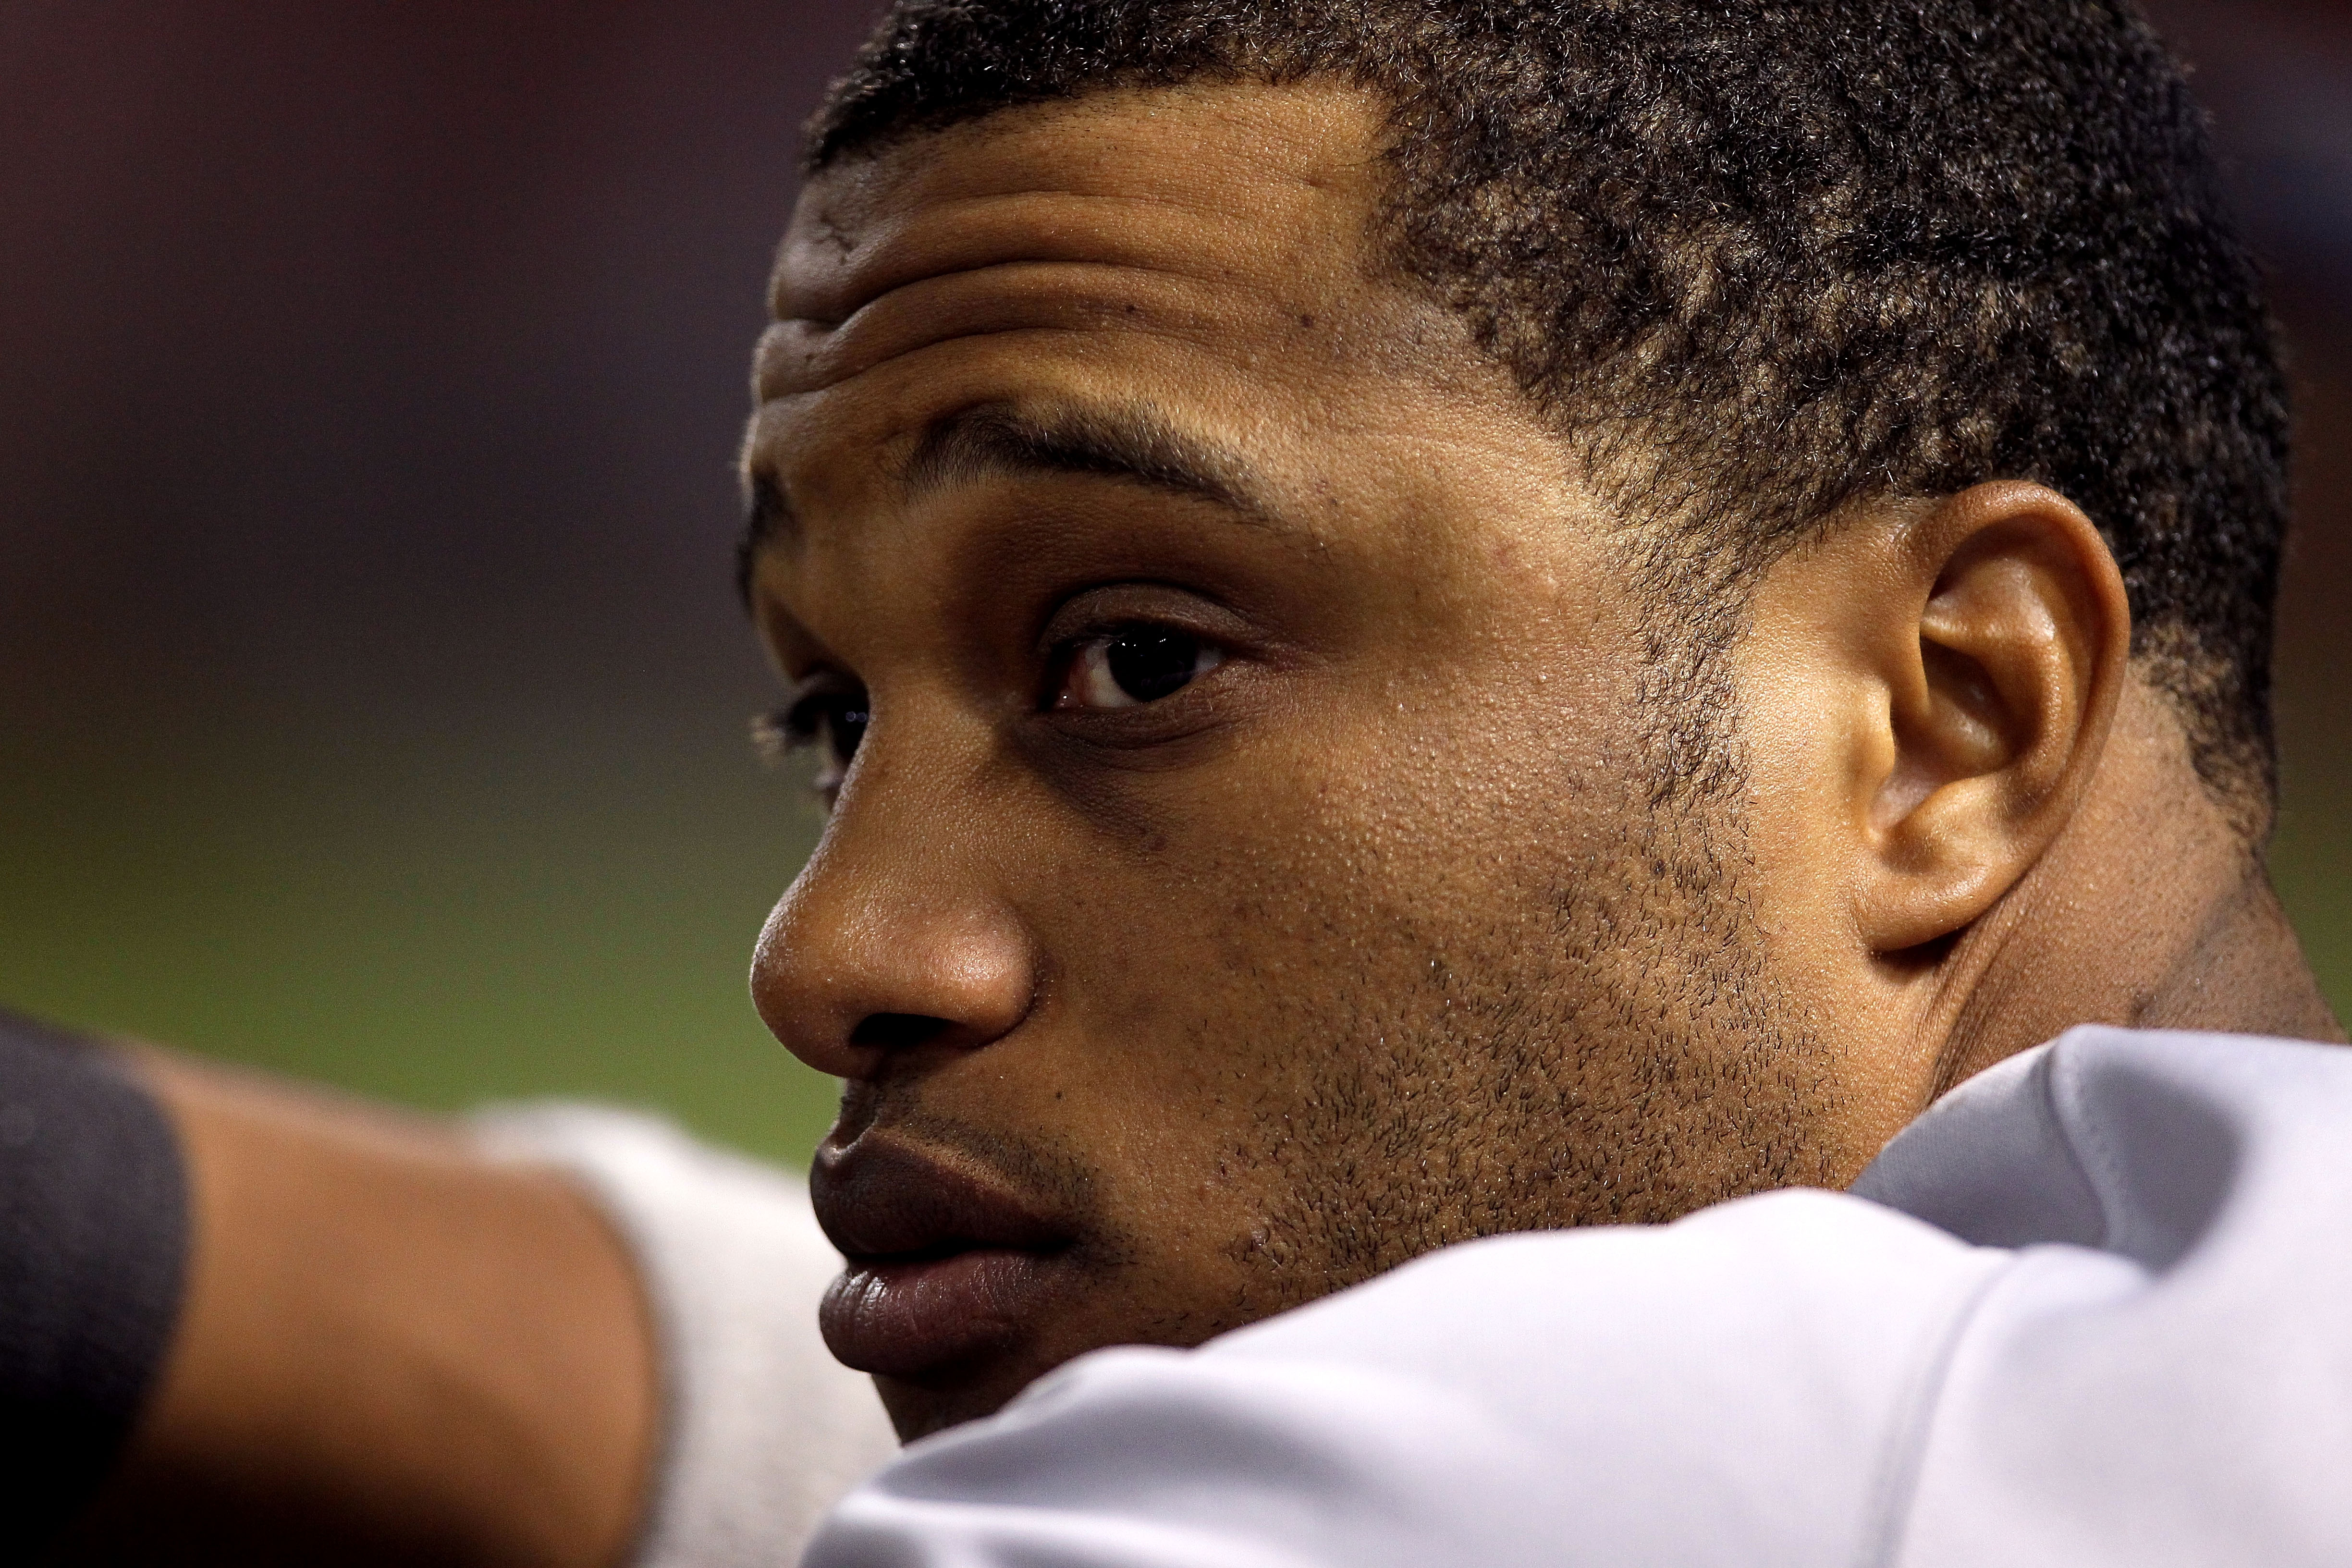 ARLINGTON, TX - OCTOBER 22:  Robinson Cano #24 of the New York Yankees looks on against the Texas Rangers in Game Six of the ALCS during the 2010 MLB Playoffs at Rangers Ballpark in Arlington on October 22, 2010 in Arlington, Texas.  (Photo by Stephen Dun